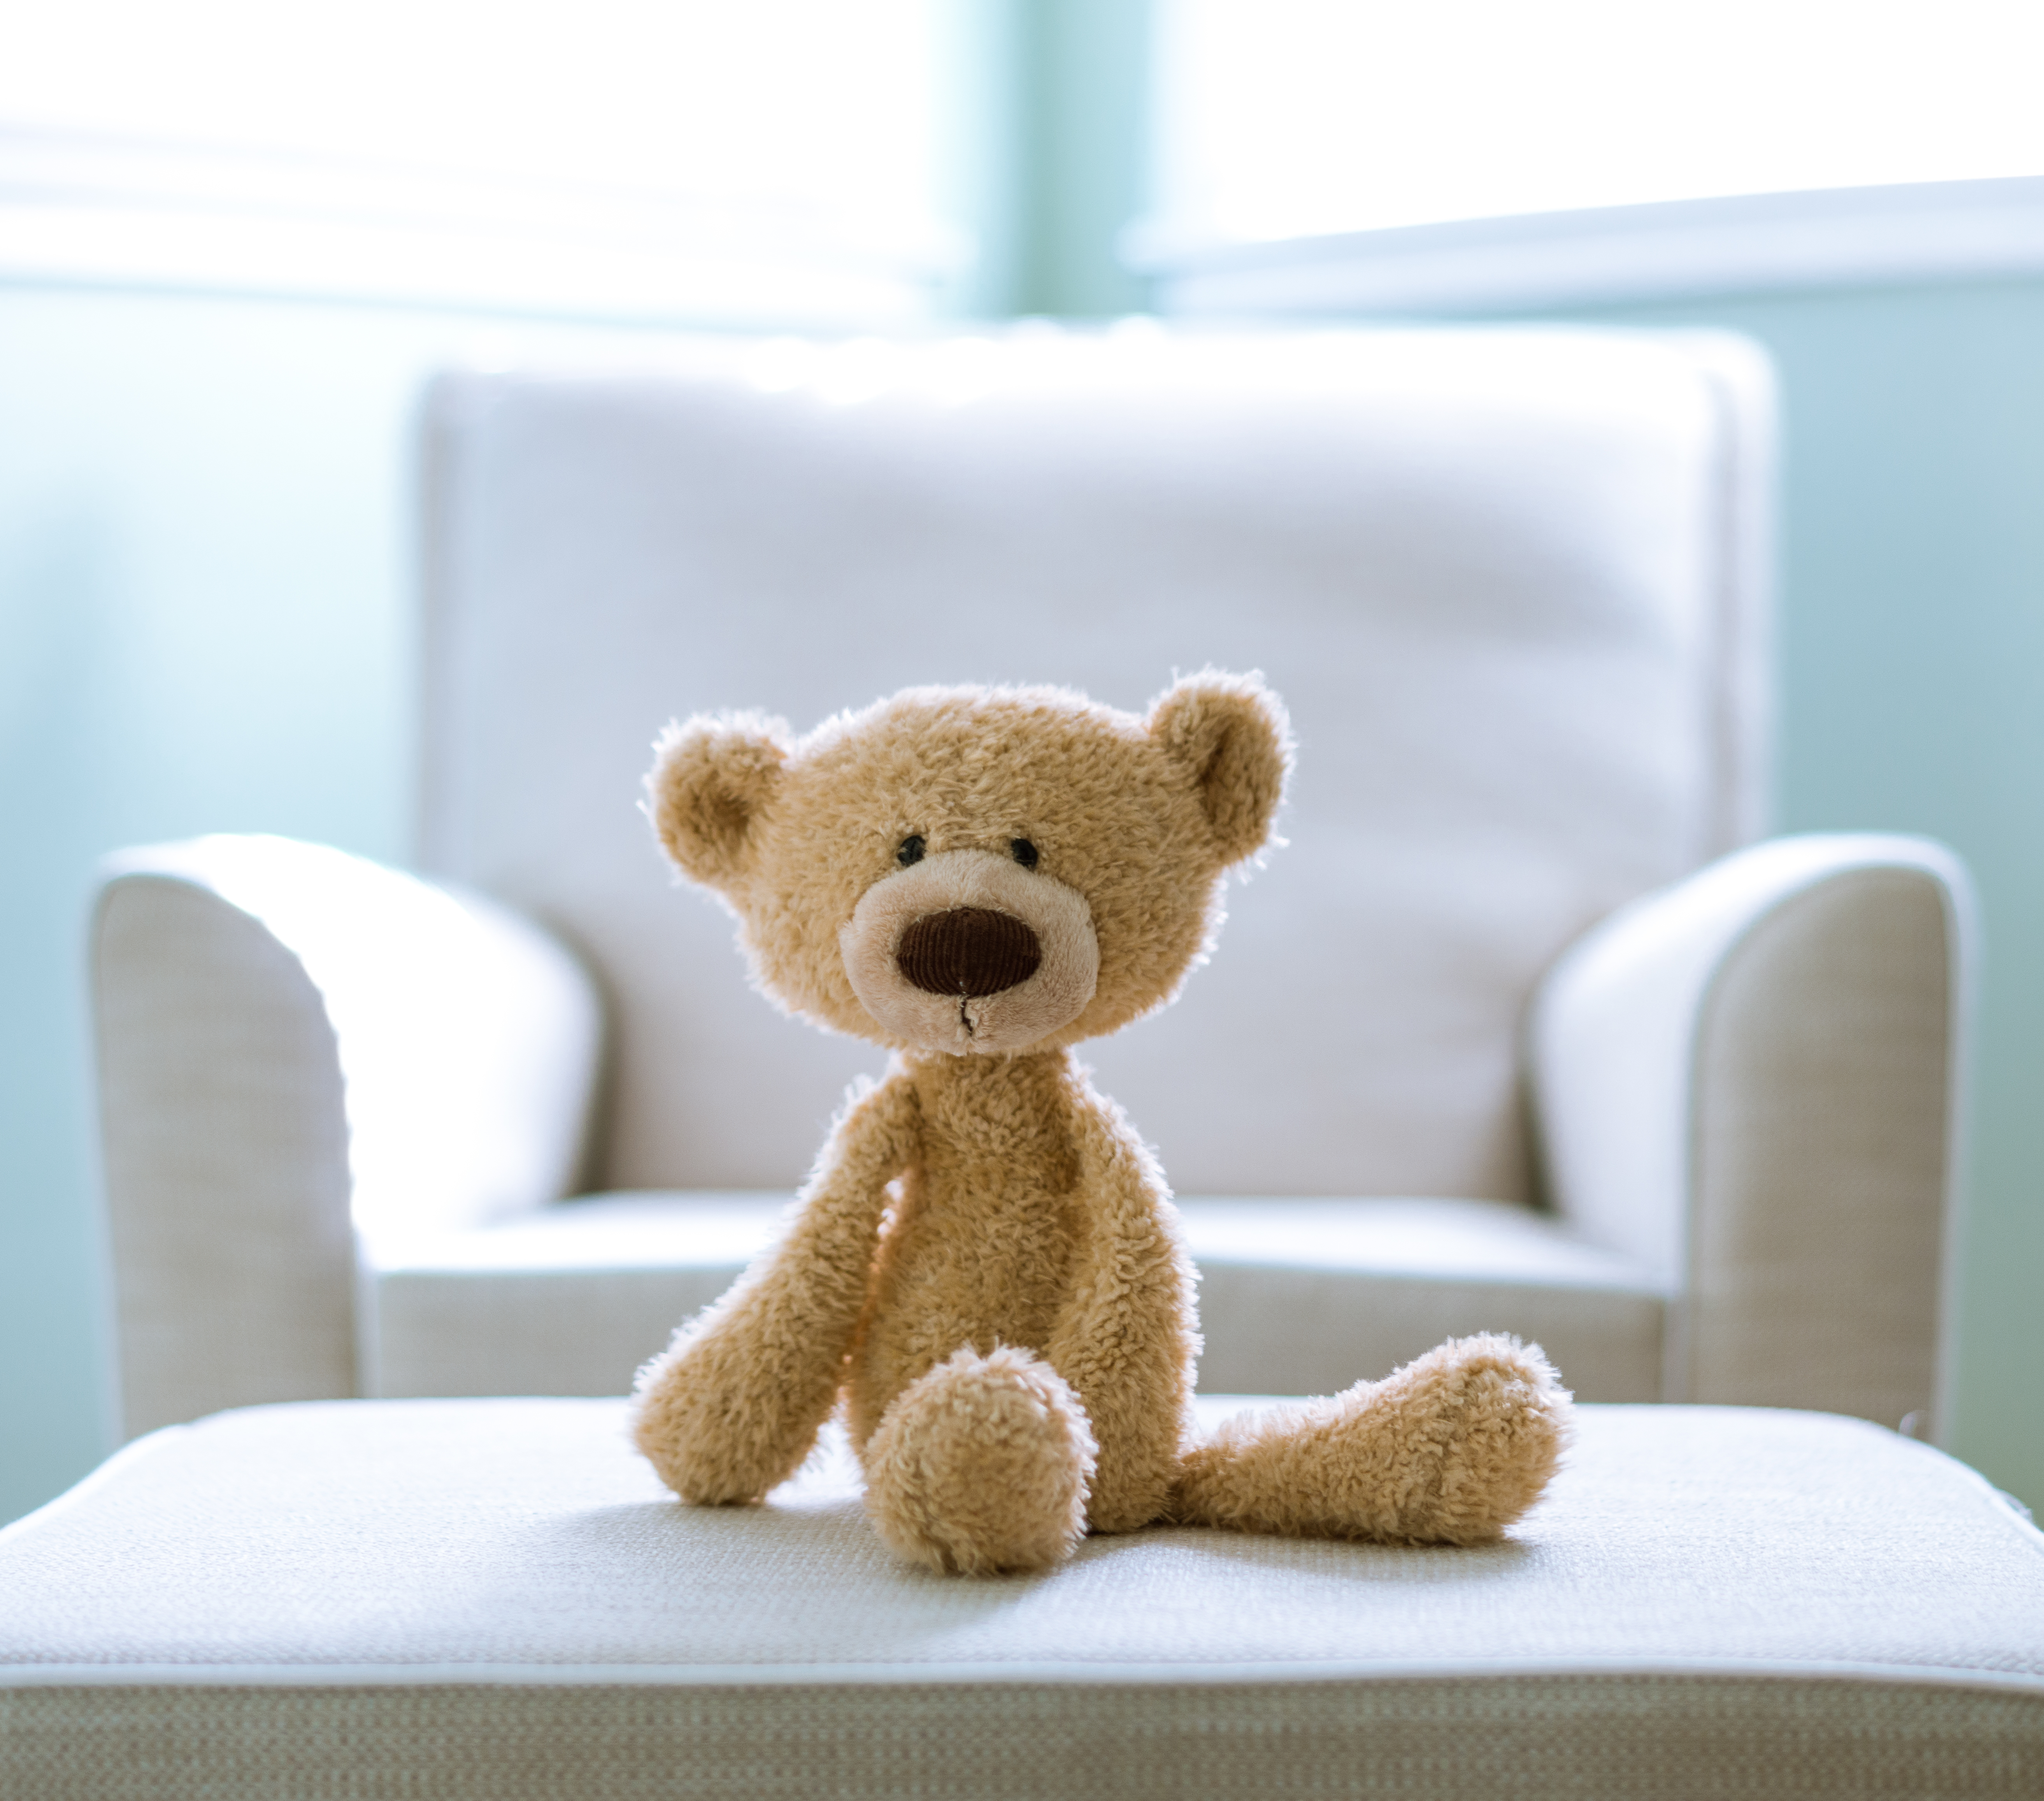 How to Clean Soft Toys That Can't Be Thrown in the Washing